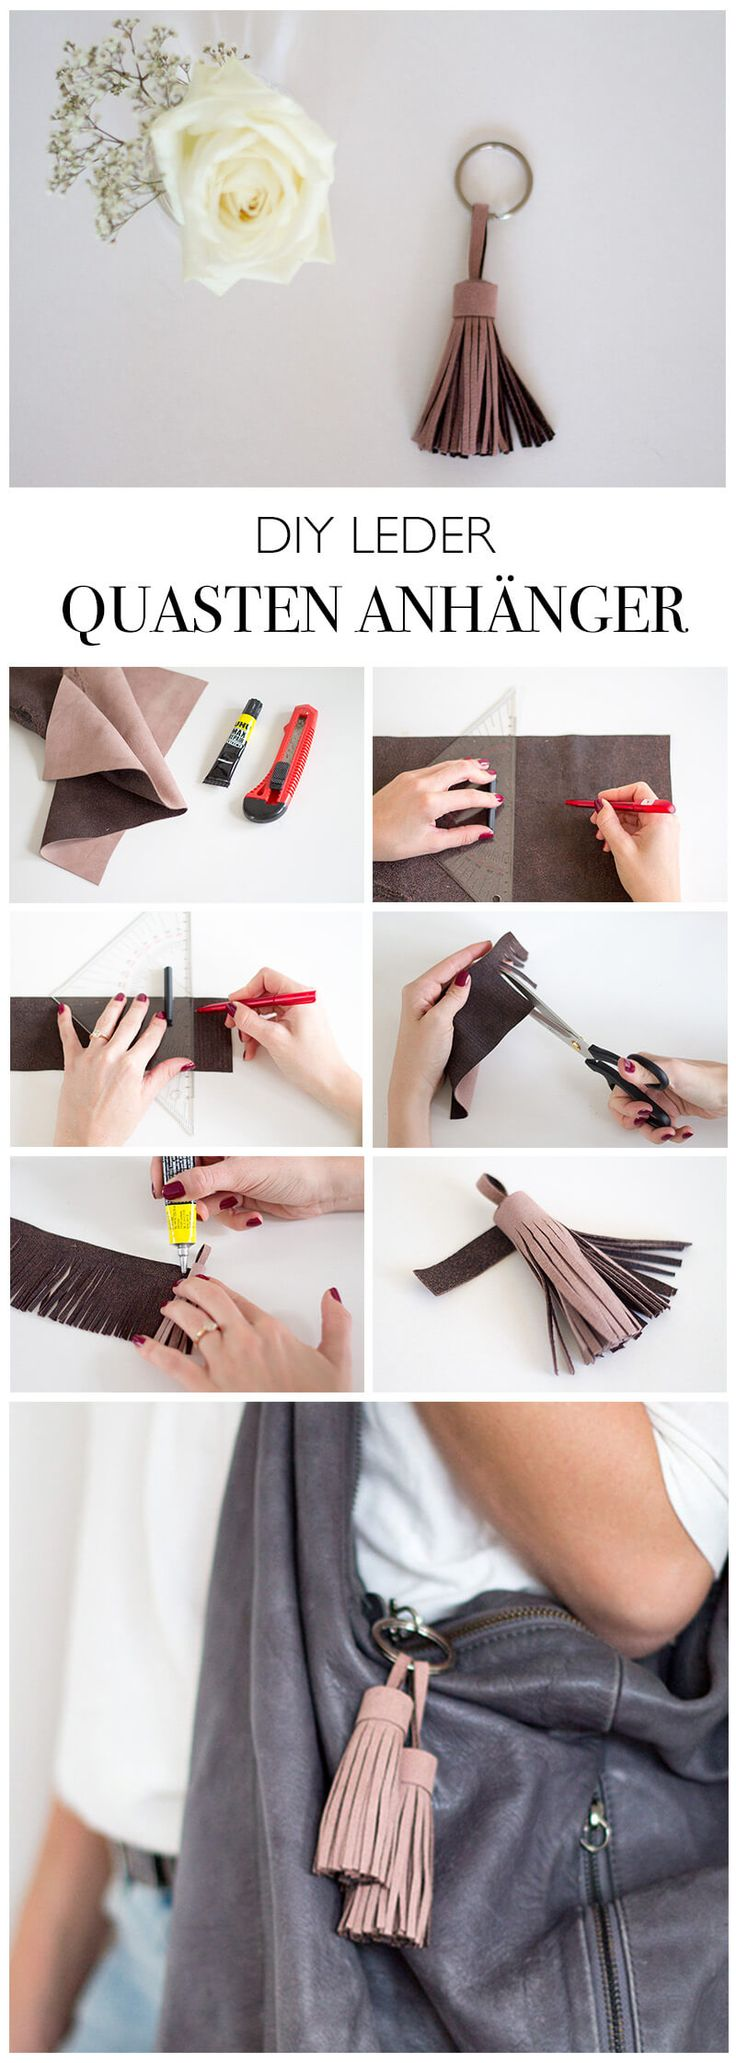 DIY LEATHER TASSEL ACCESSORIES – Make gifts yourself